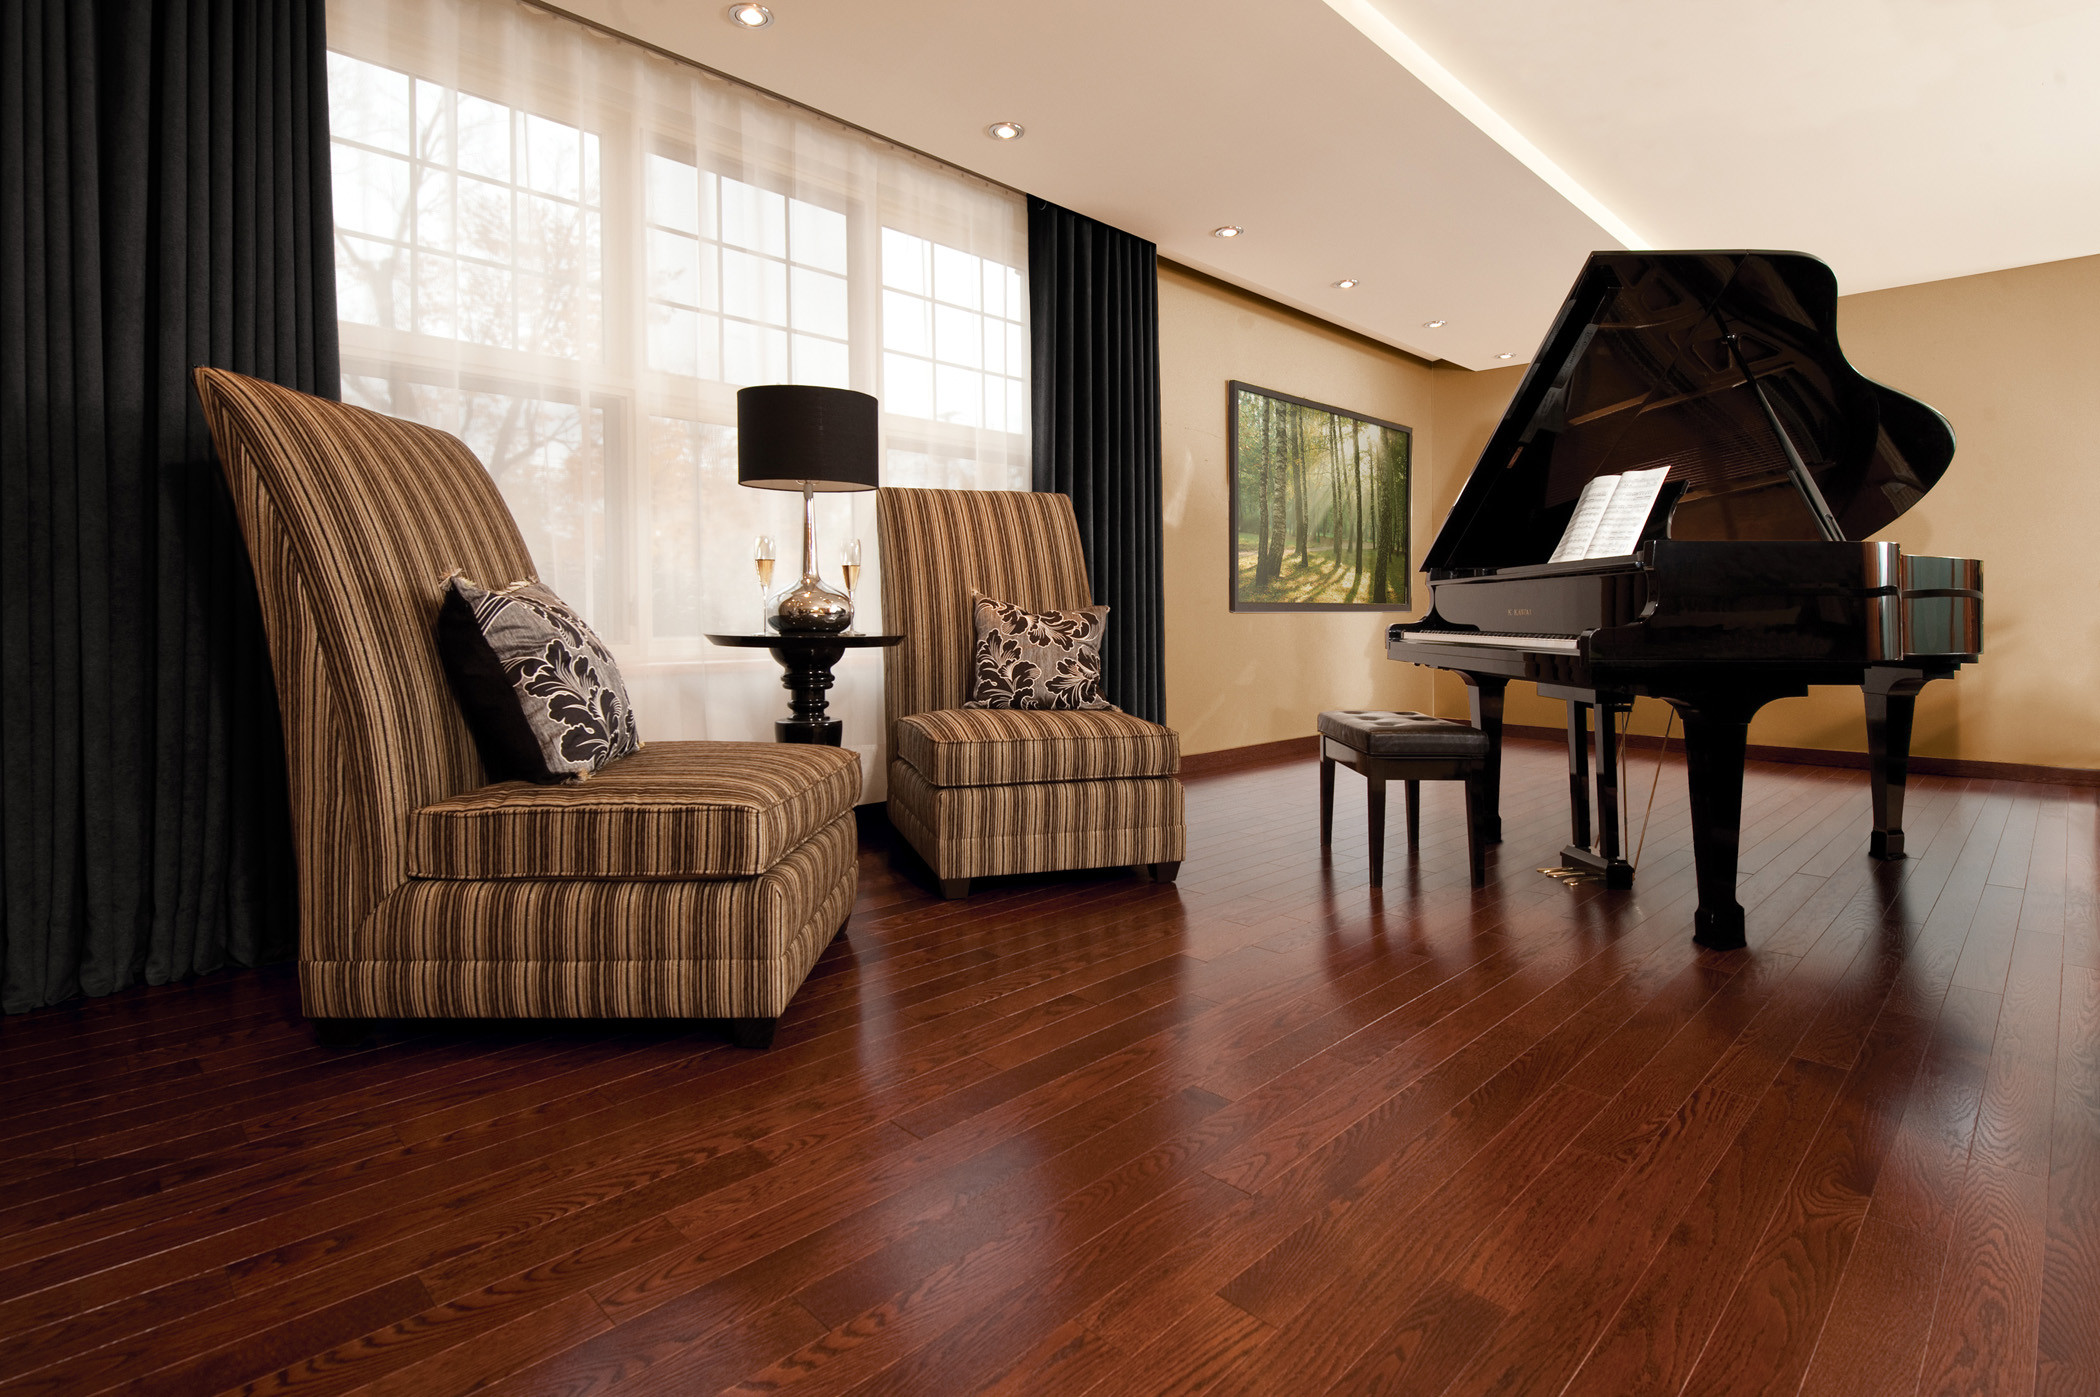 hardwood floor refinishing houston tx of cost per square foot to refinish hardwood floors gray tones mixed with regard to cost per square foot to refinish hardwood floors hardwood floor design hardwood floor refinishing staining hardwood